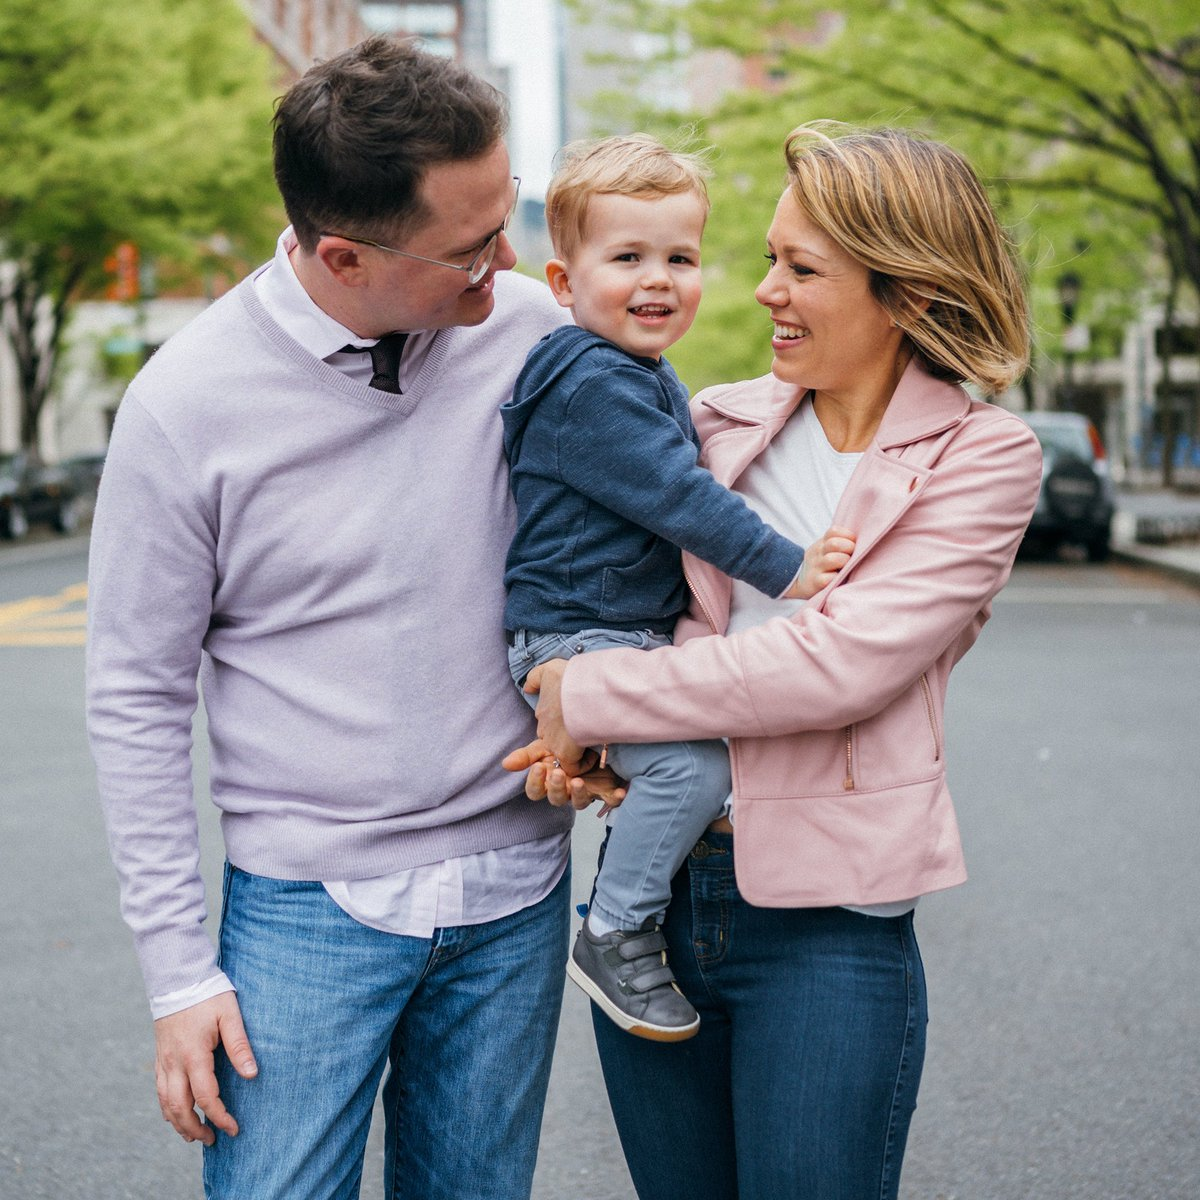 Friends, fans of TODAY host Dylan Dreyer react to her baby announcement